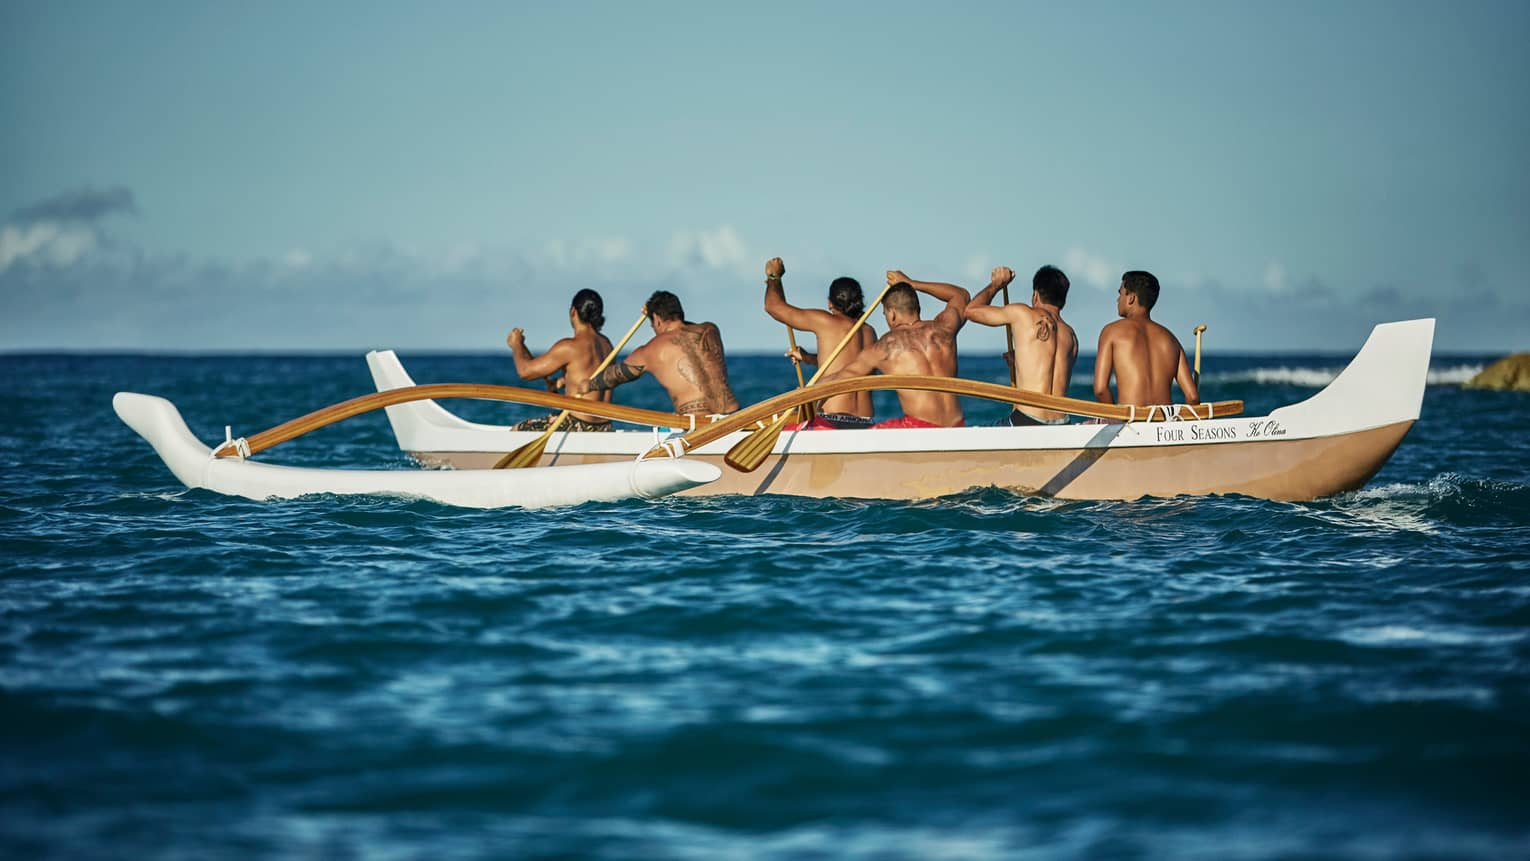 A group of native Hawaiian men out on the ocean in a wayfinding boat